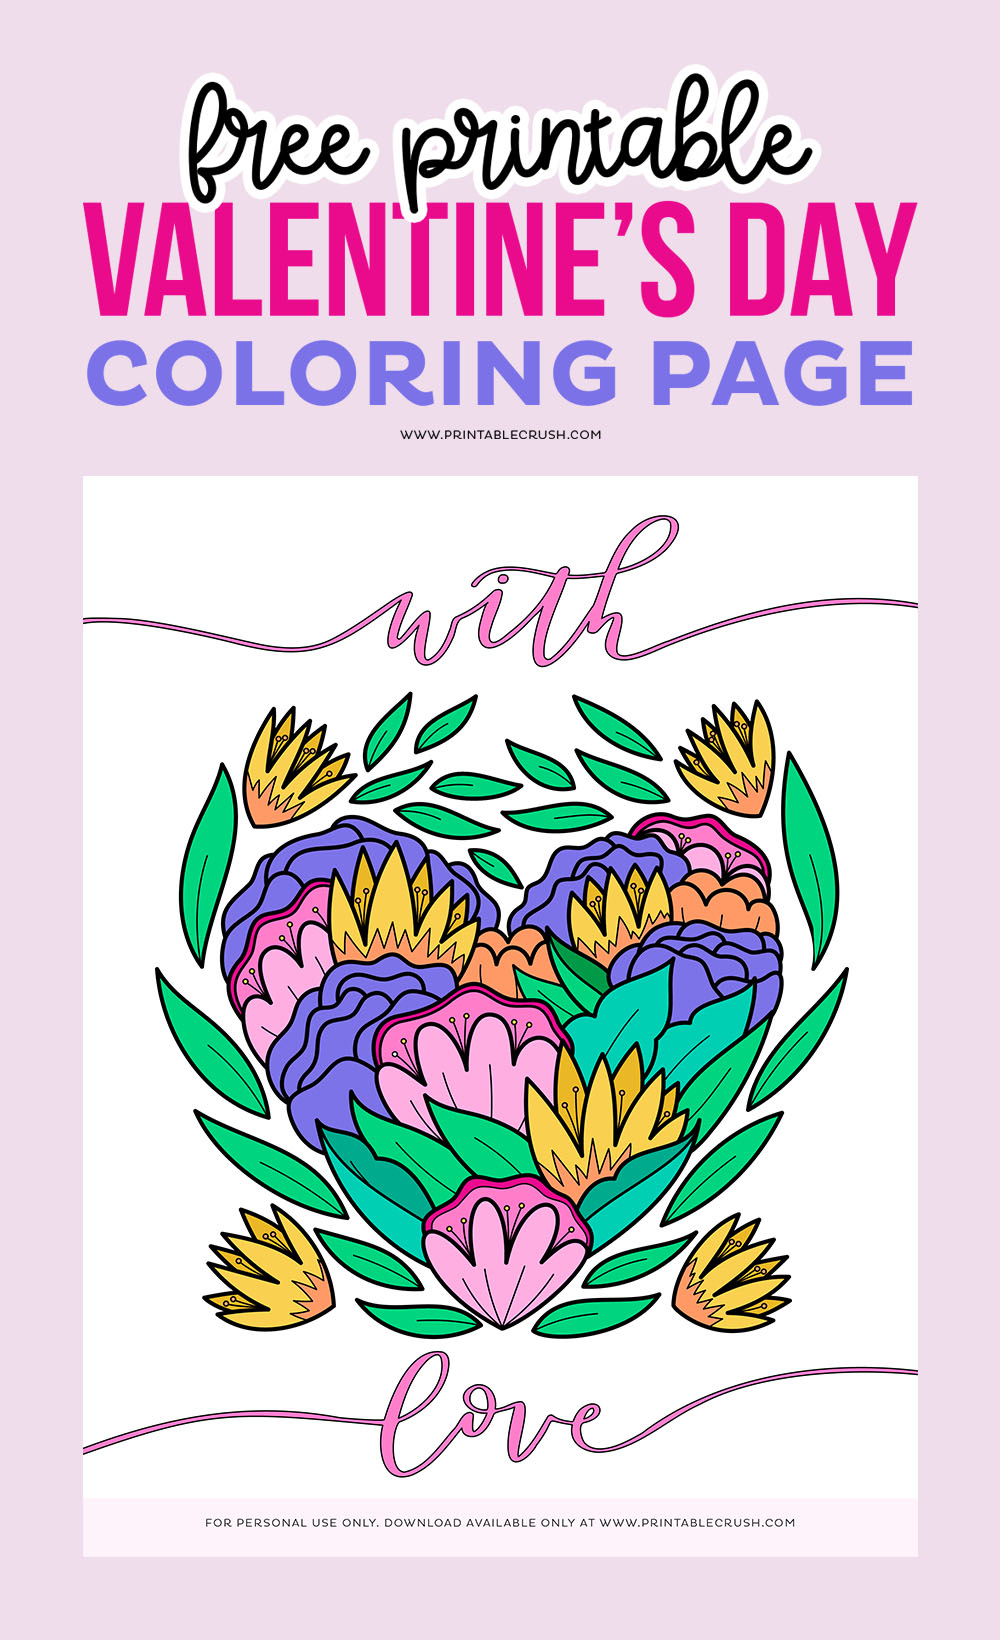 Free Printable Valentine's Day coloring Page - Free Coloring Page - Free Heart Coloring Page - Printable Crush